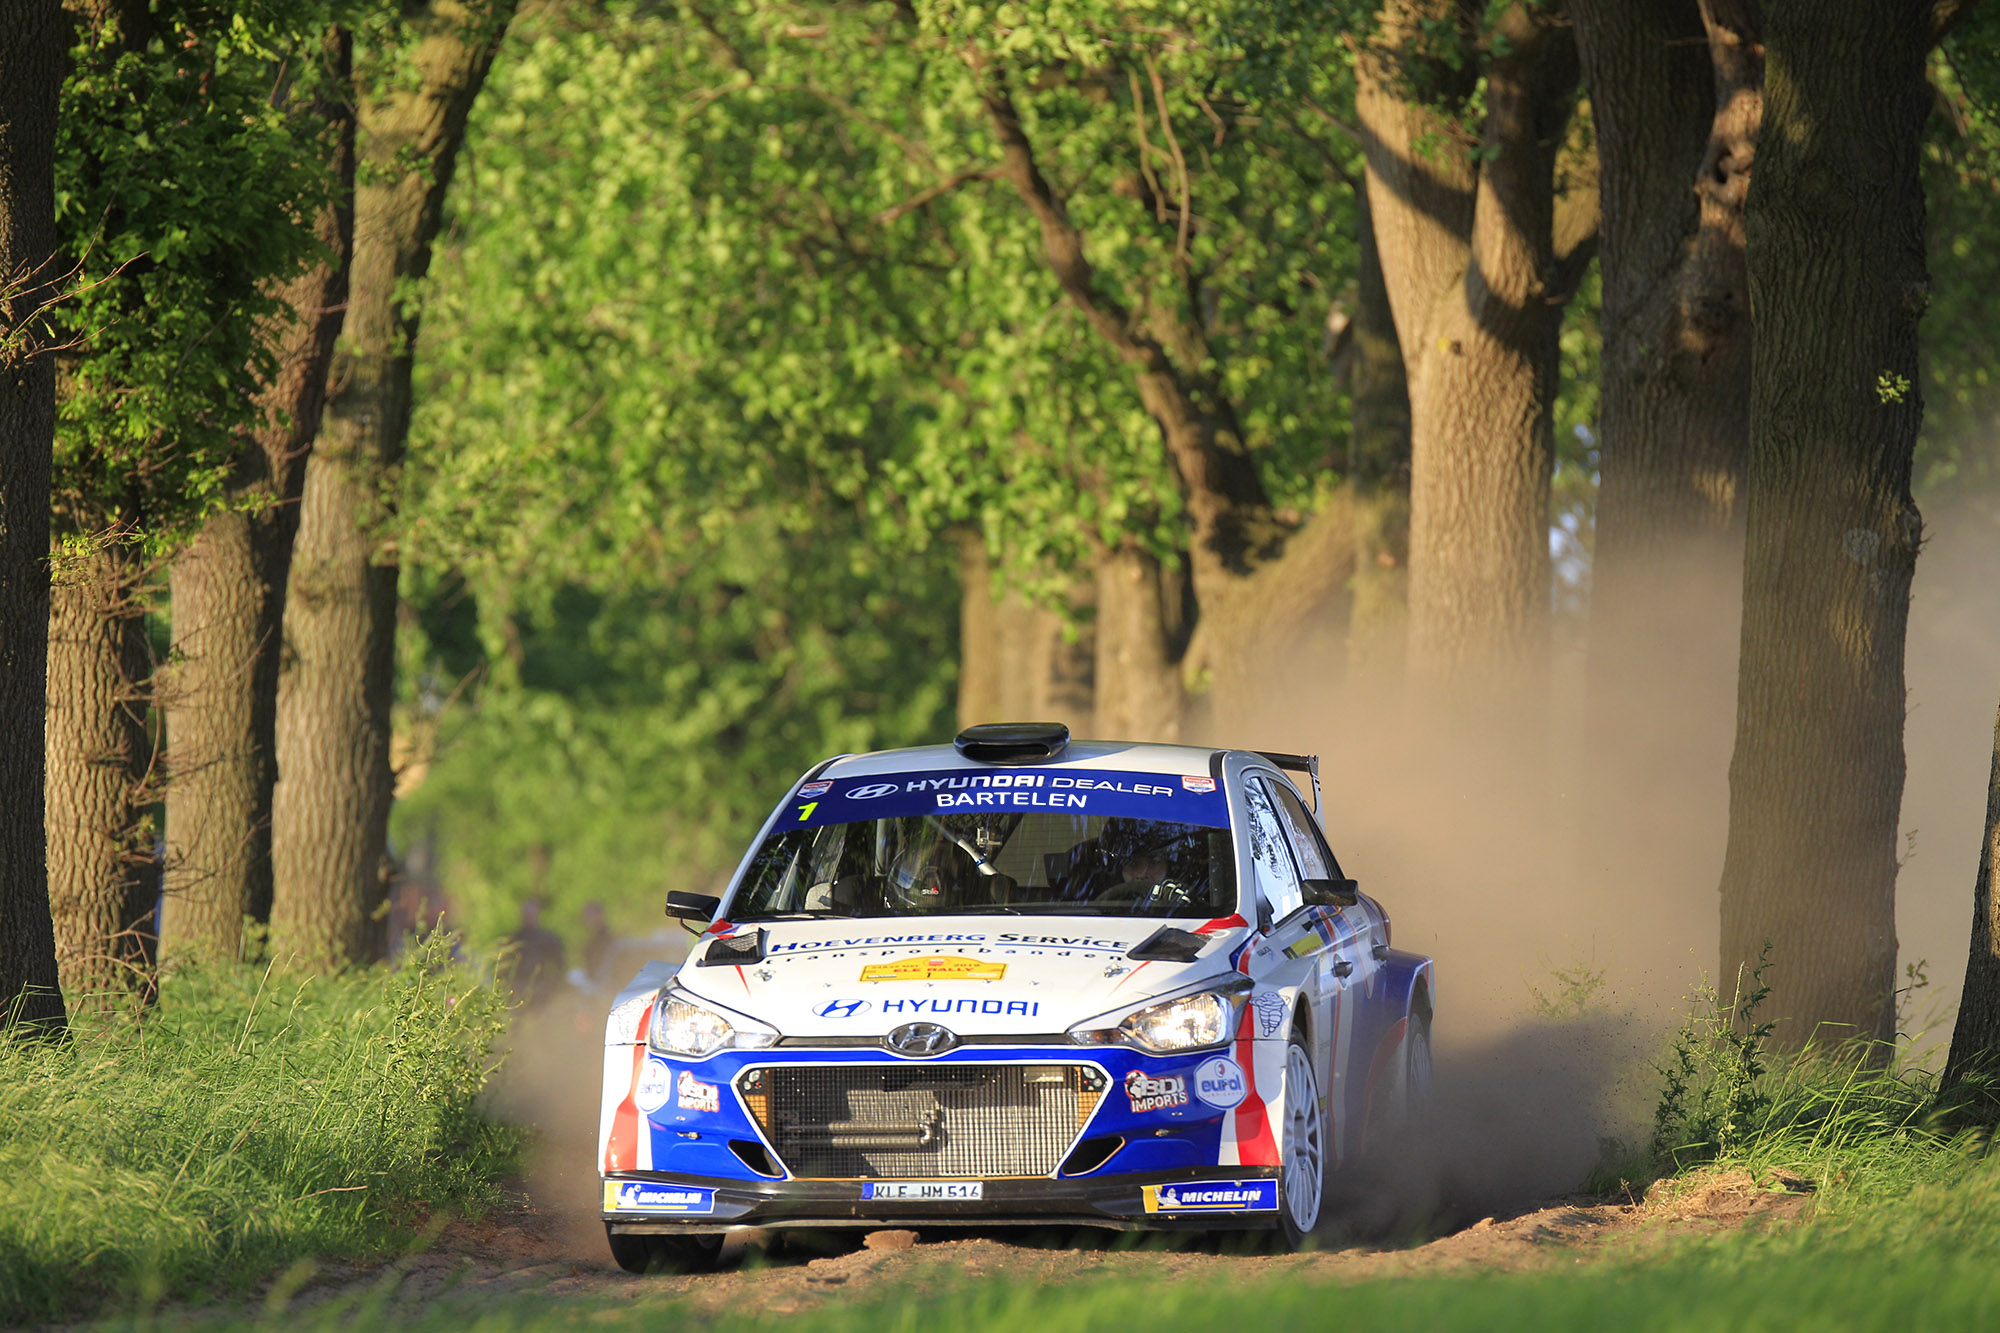 Bob de Jong favoriet in GTC Rally 2019